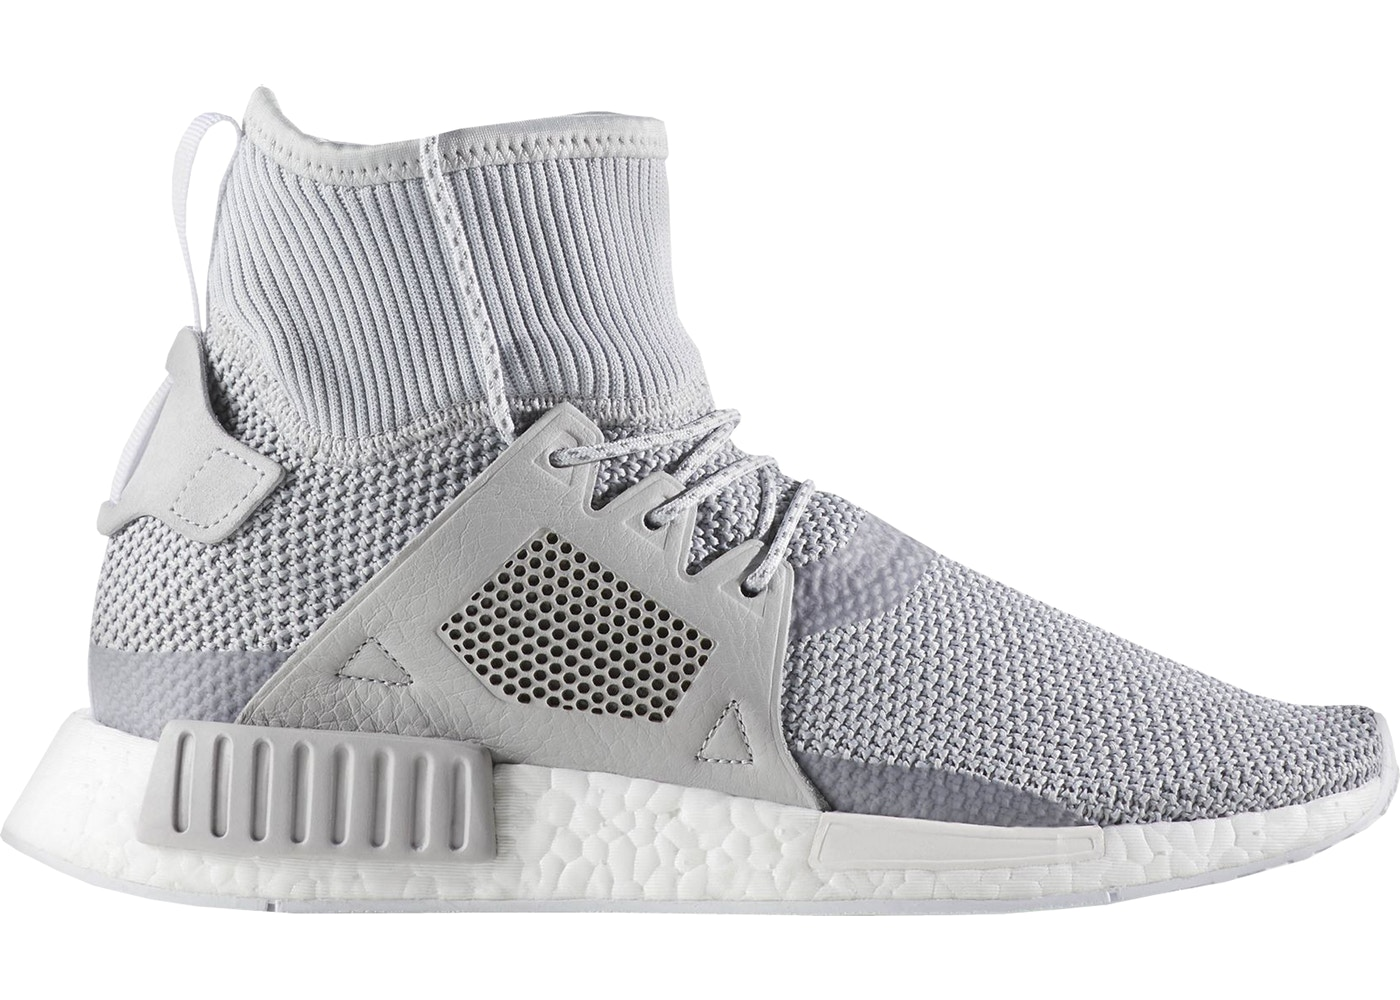 4124194d6 adidas NMD XR1 Shoes - Release Date